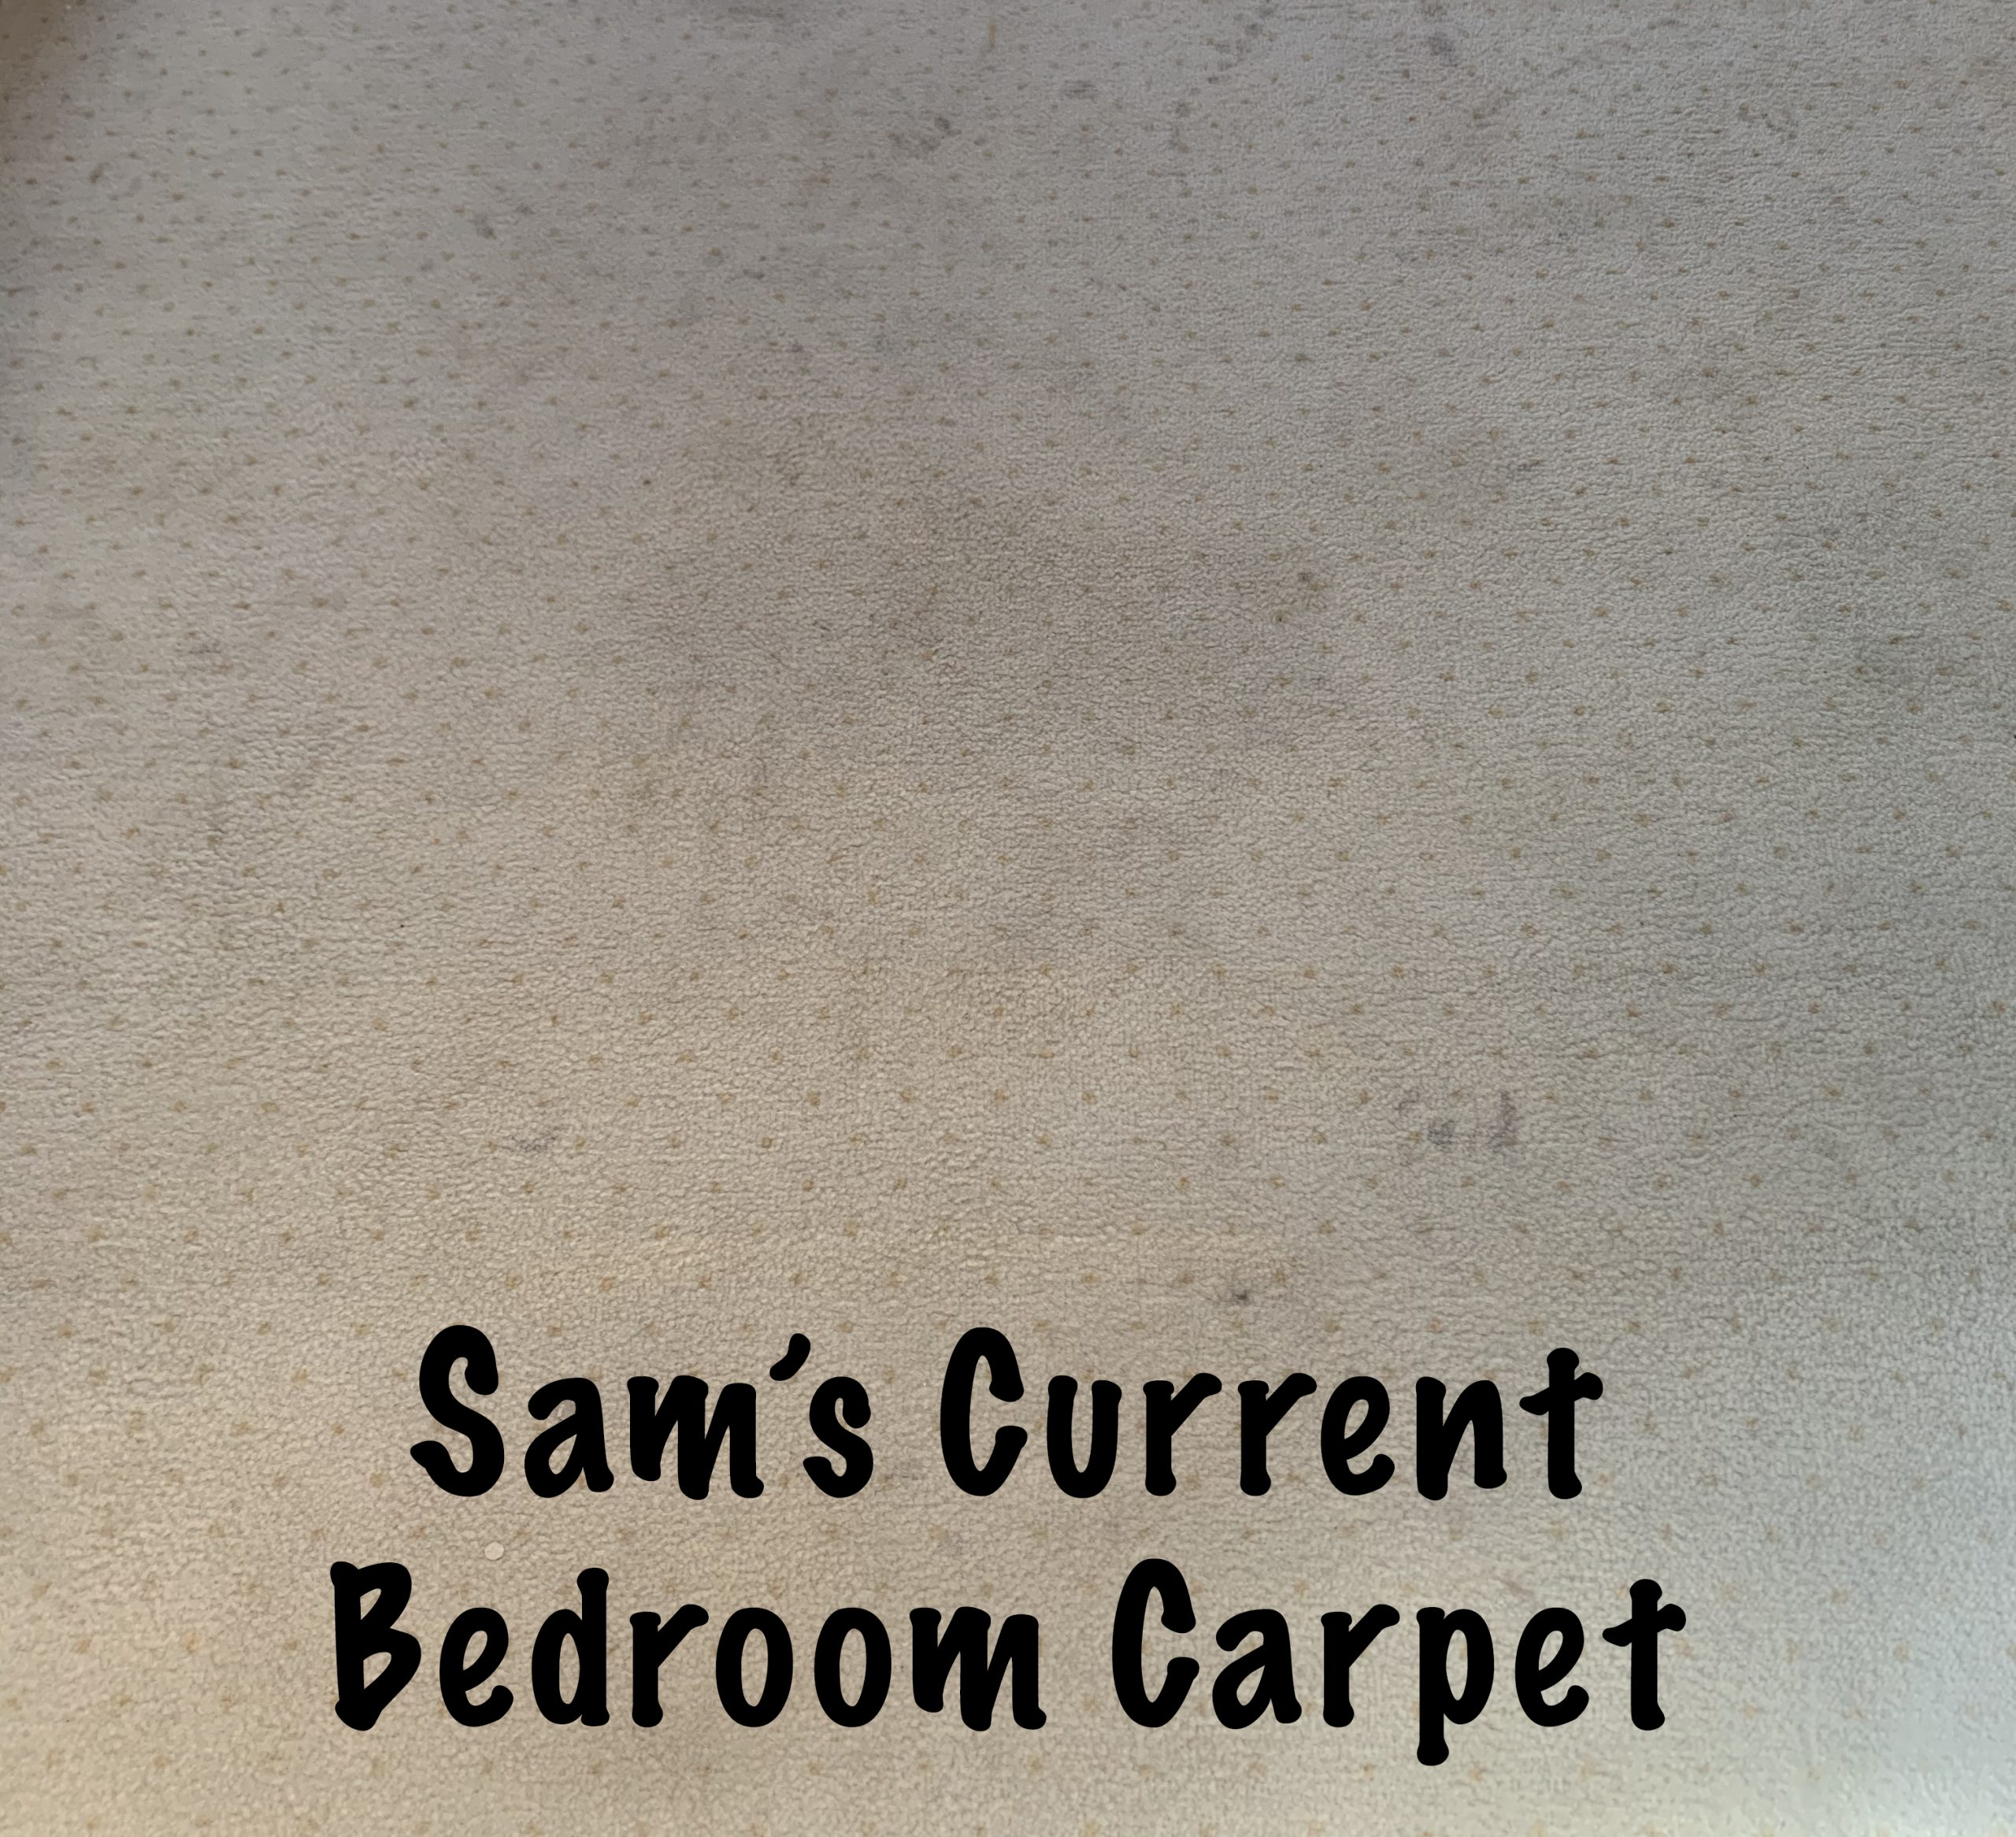 Sam's current bedroom carpet - flooring options for a special needs bedroom